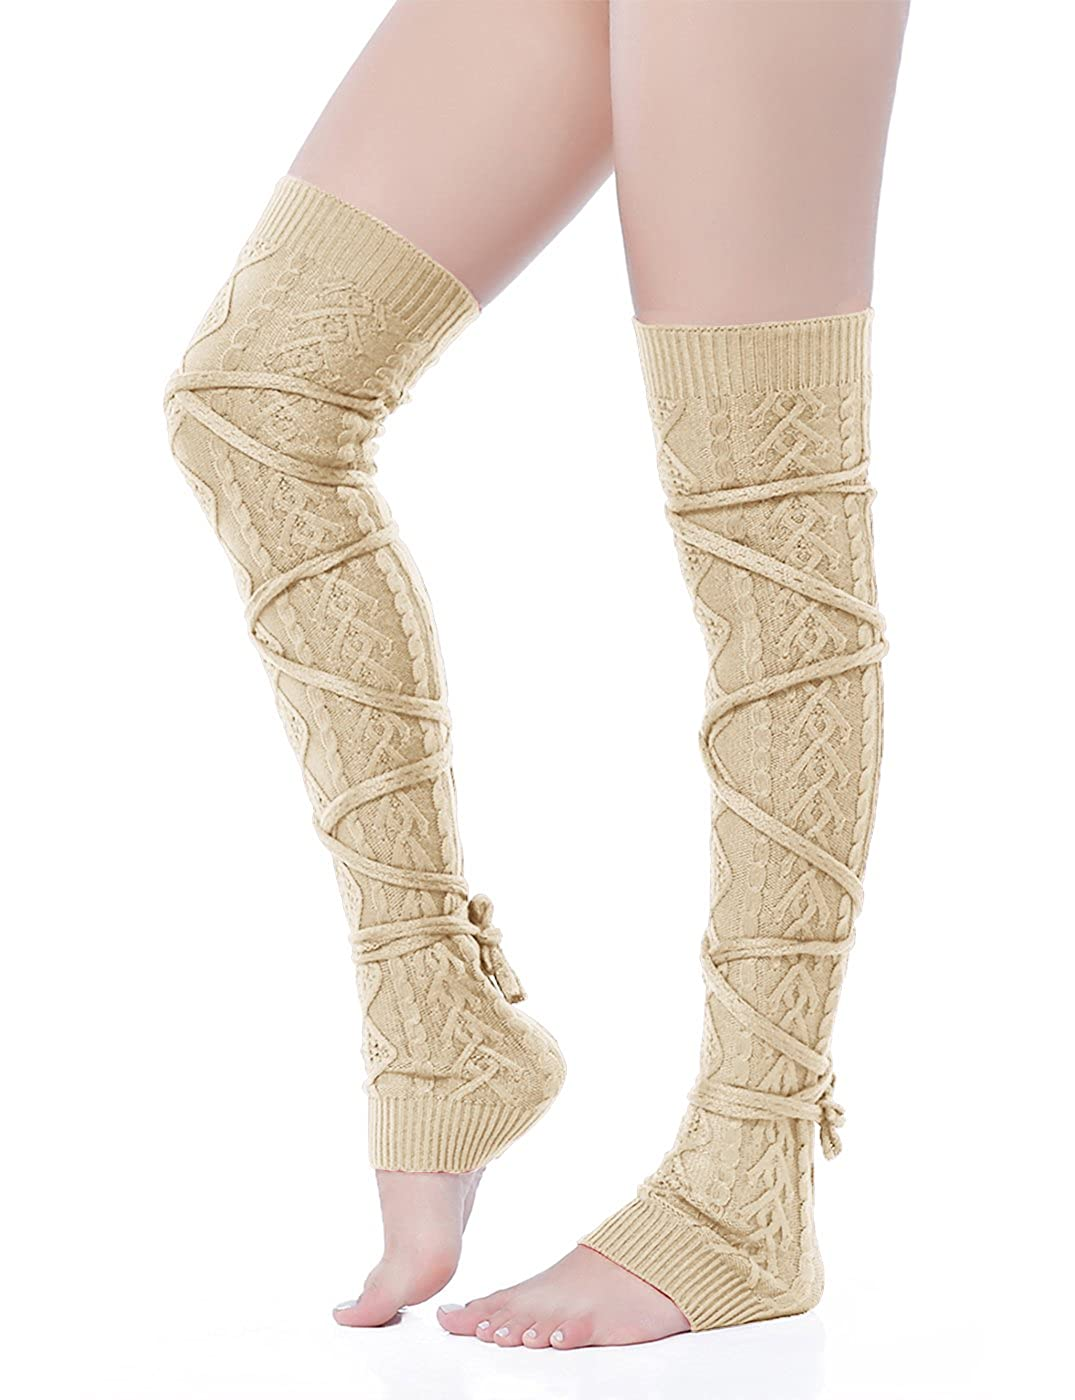 65d94c099264b V28 Women Over Knee Lace up Tie Cable Knit Ribbed Crochet Long Boot Leg  Warmers at Amazon Women's Clothing store: